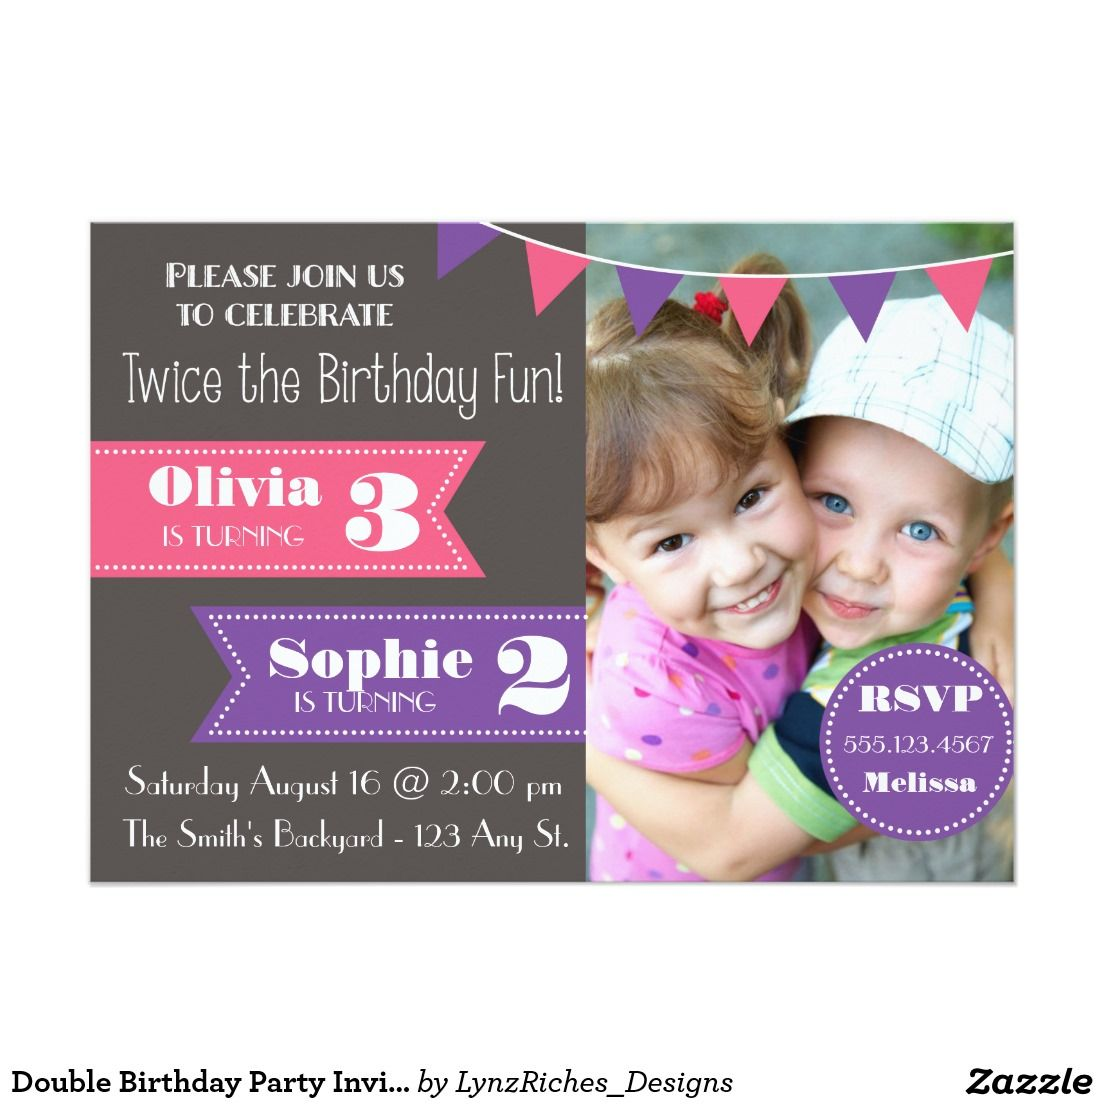 20 Joint Birthday Party Invitation Wording 6 Ruti And Arti S